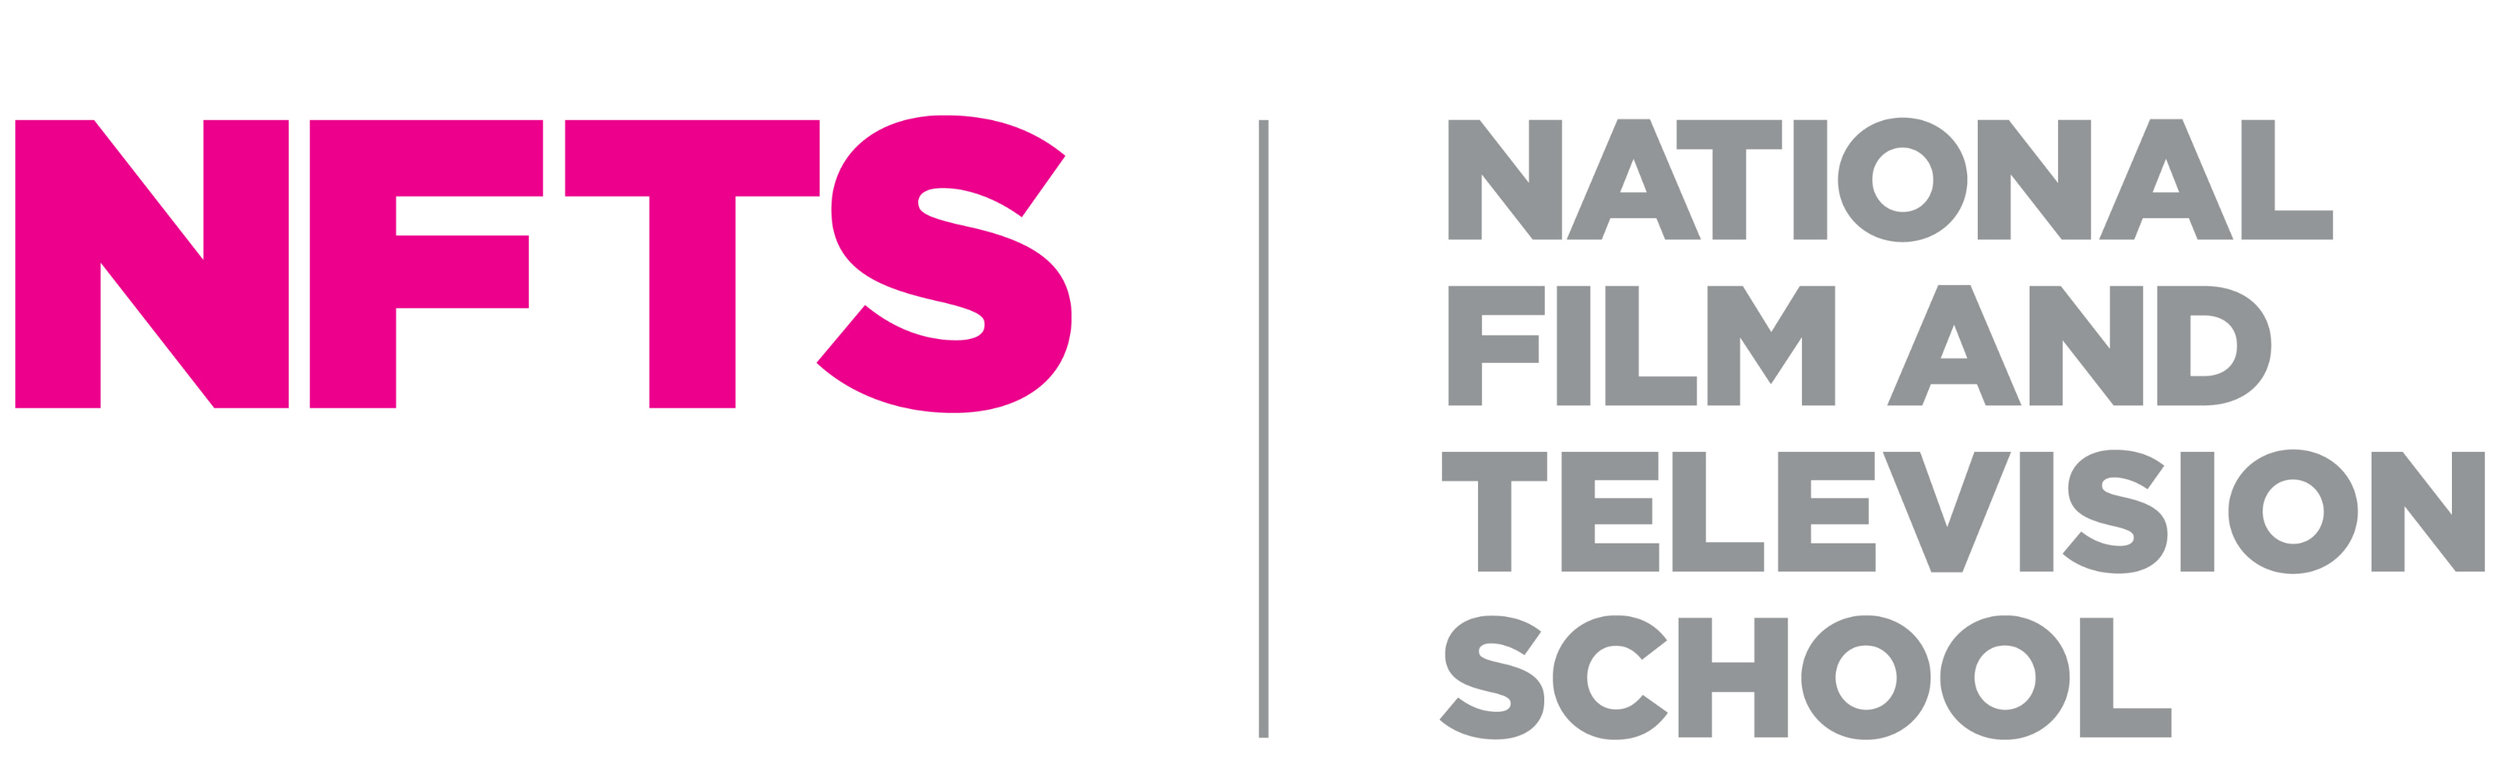 nfts_on_logo_template_0.jpg